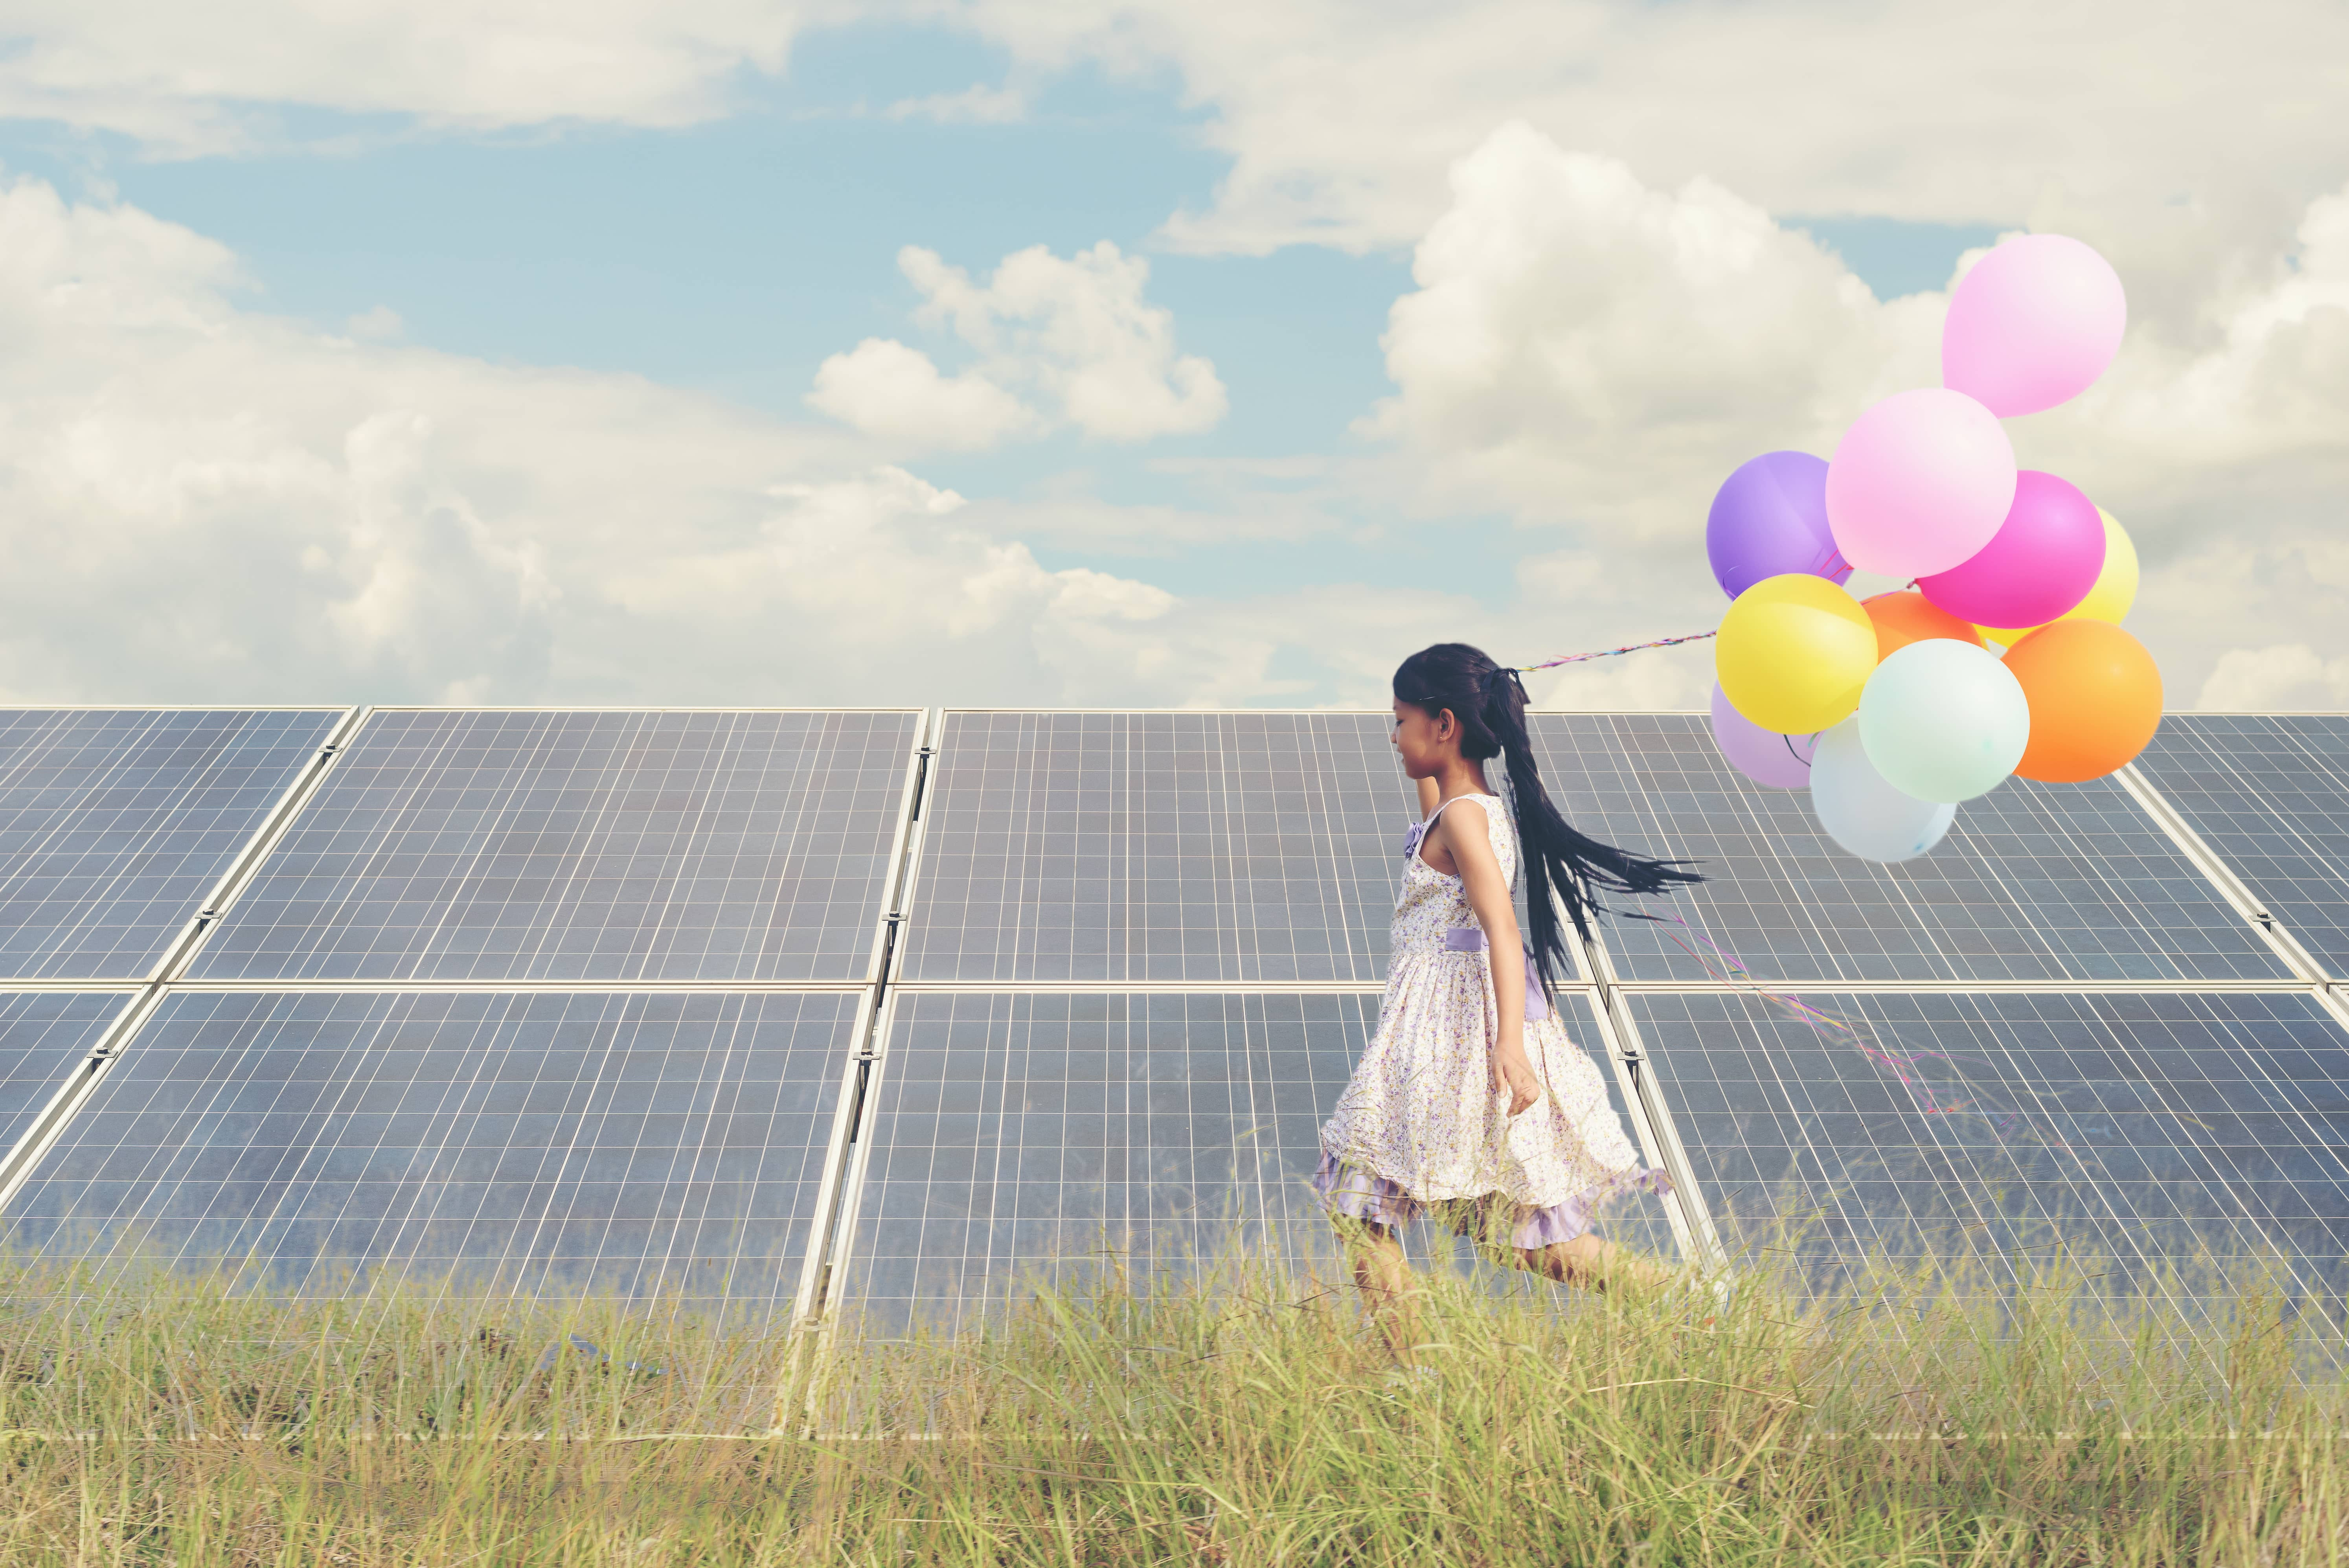 Learn more about Solar FiTs